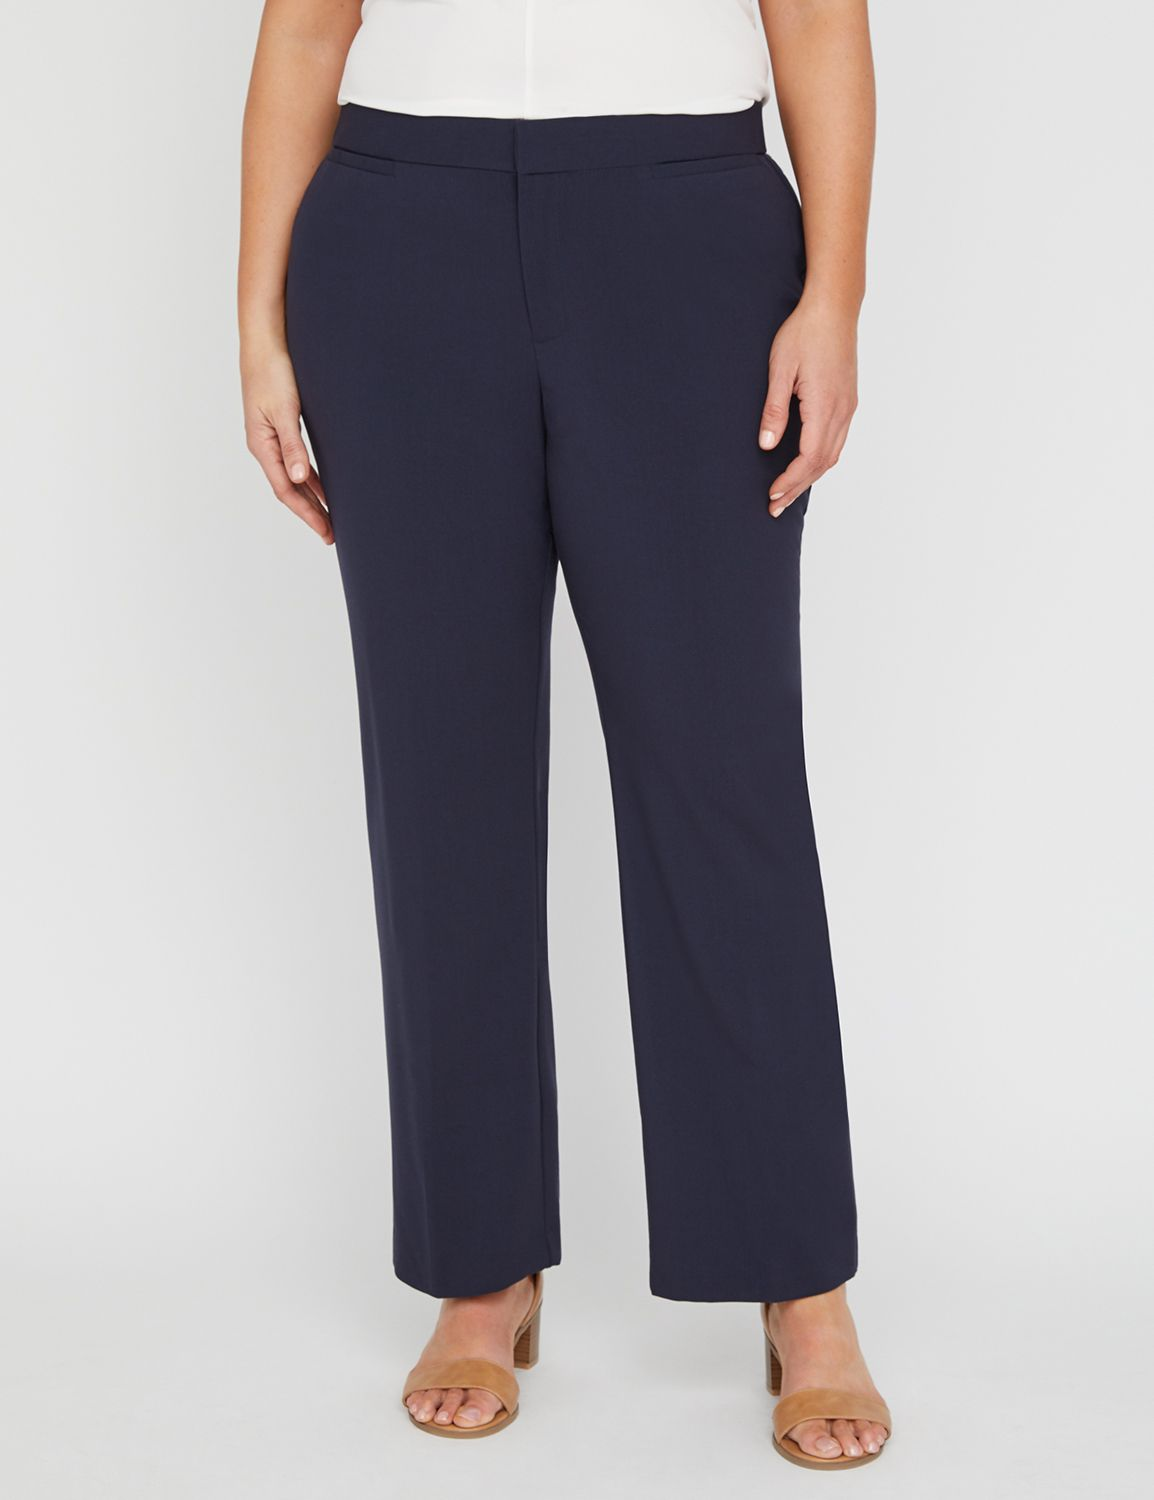 Right Fit Pant (Moderately Curvy) Right Fit Pant (Moderately Curvy) MP-300043678